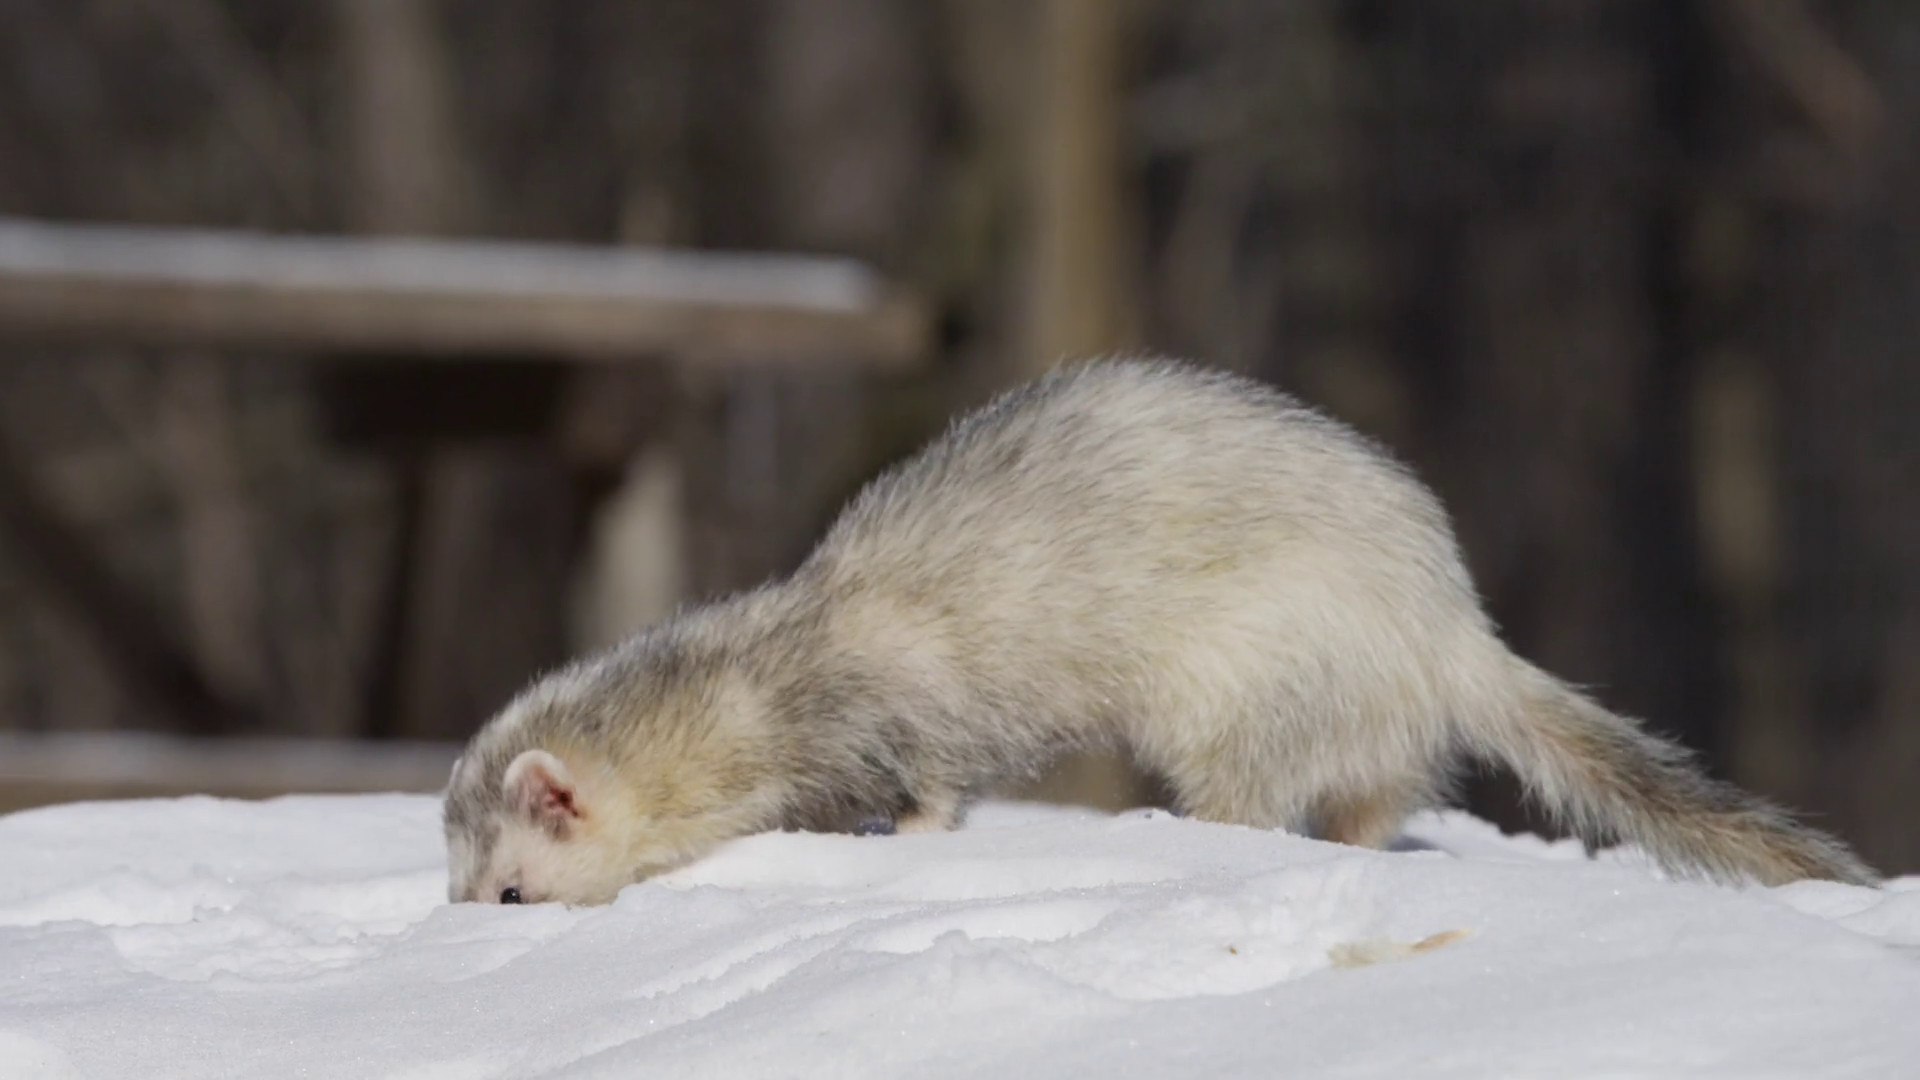 Res: 1920x1080, cute ferret walking on the snow low angle slowmo 4k Stock Video Footage -  Videoblocks